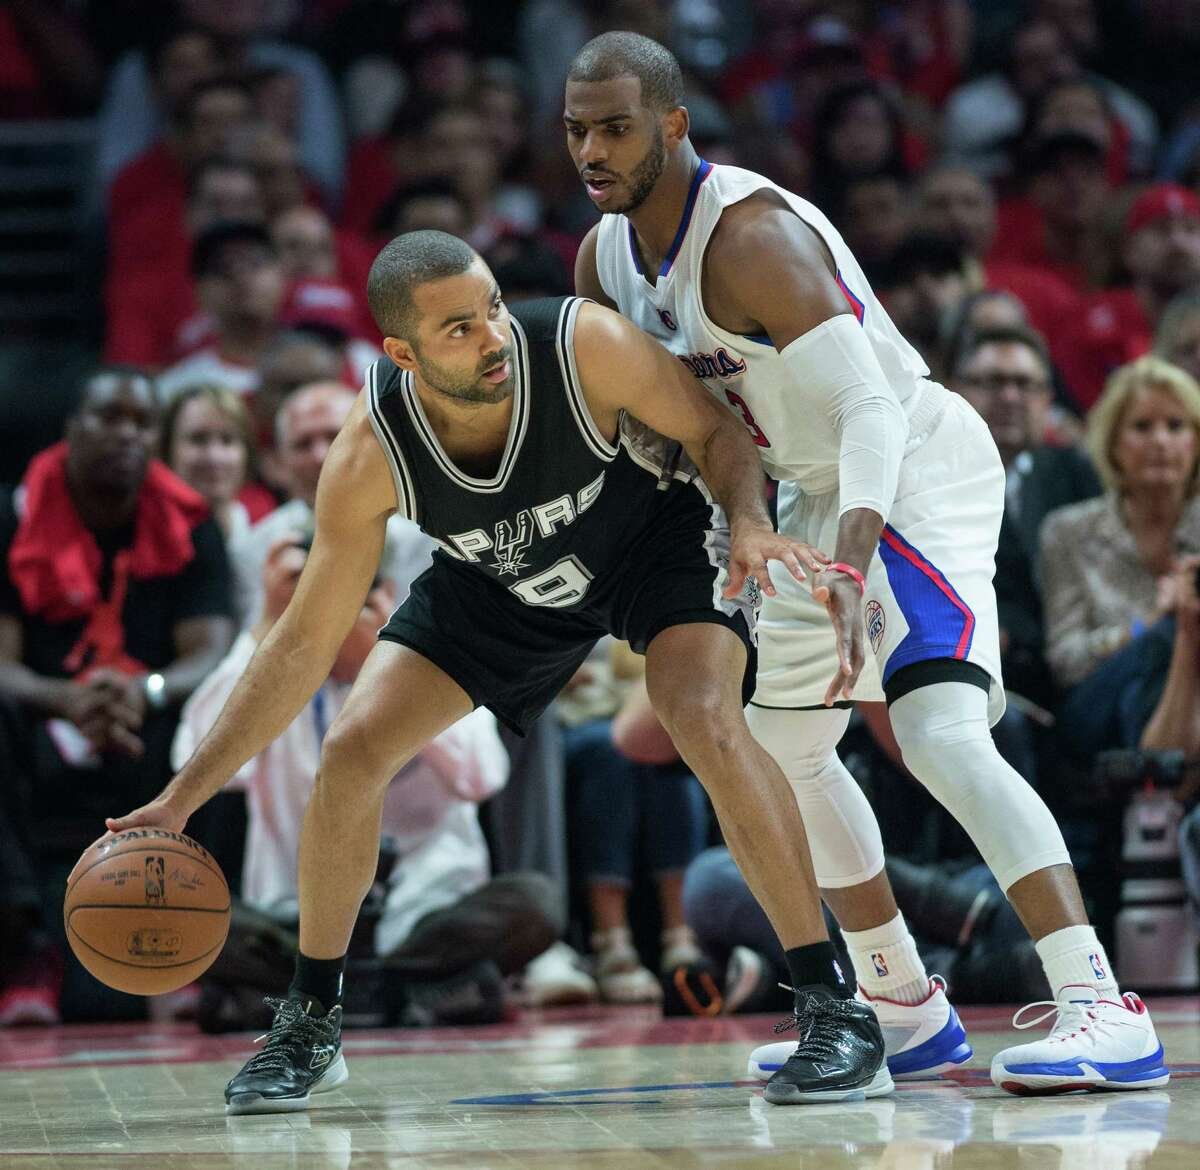 The Clippers' Chris Paul defends the Spurs' Tony Parker during the first half of Game 1.